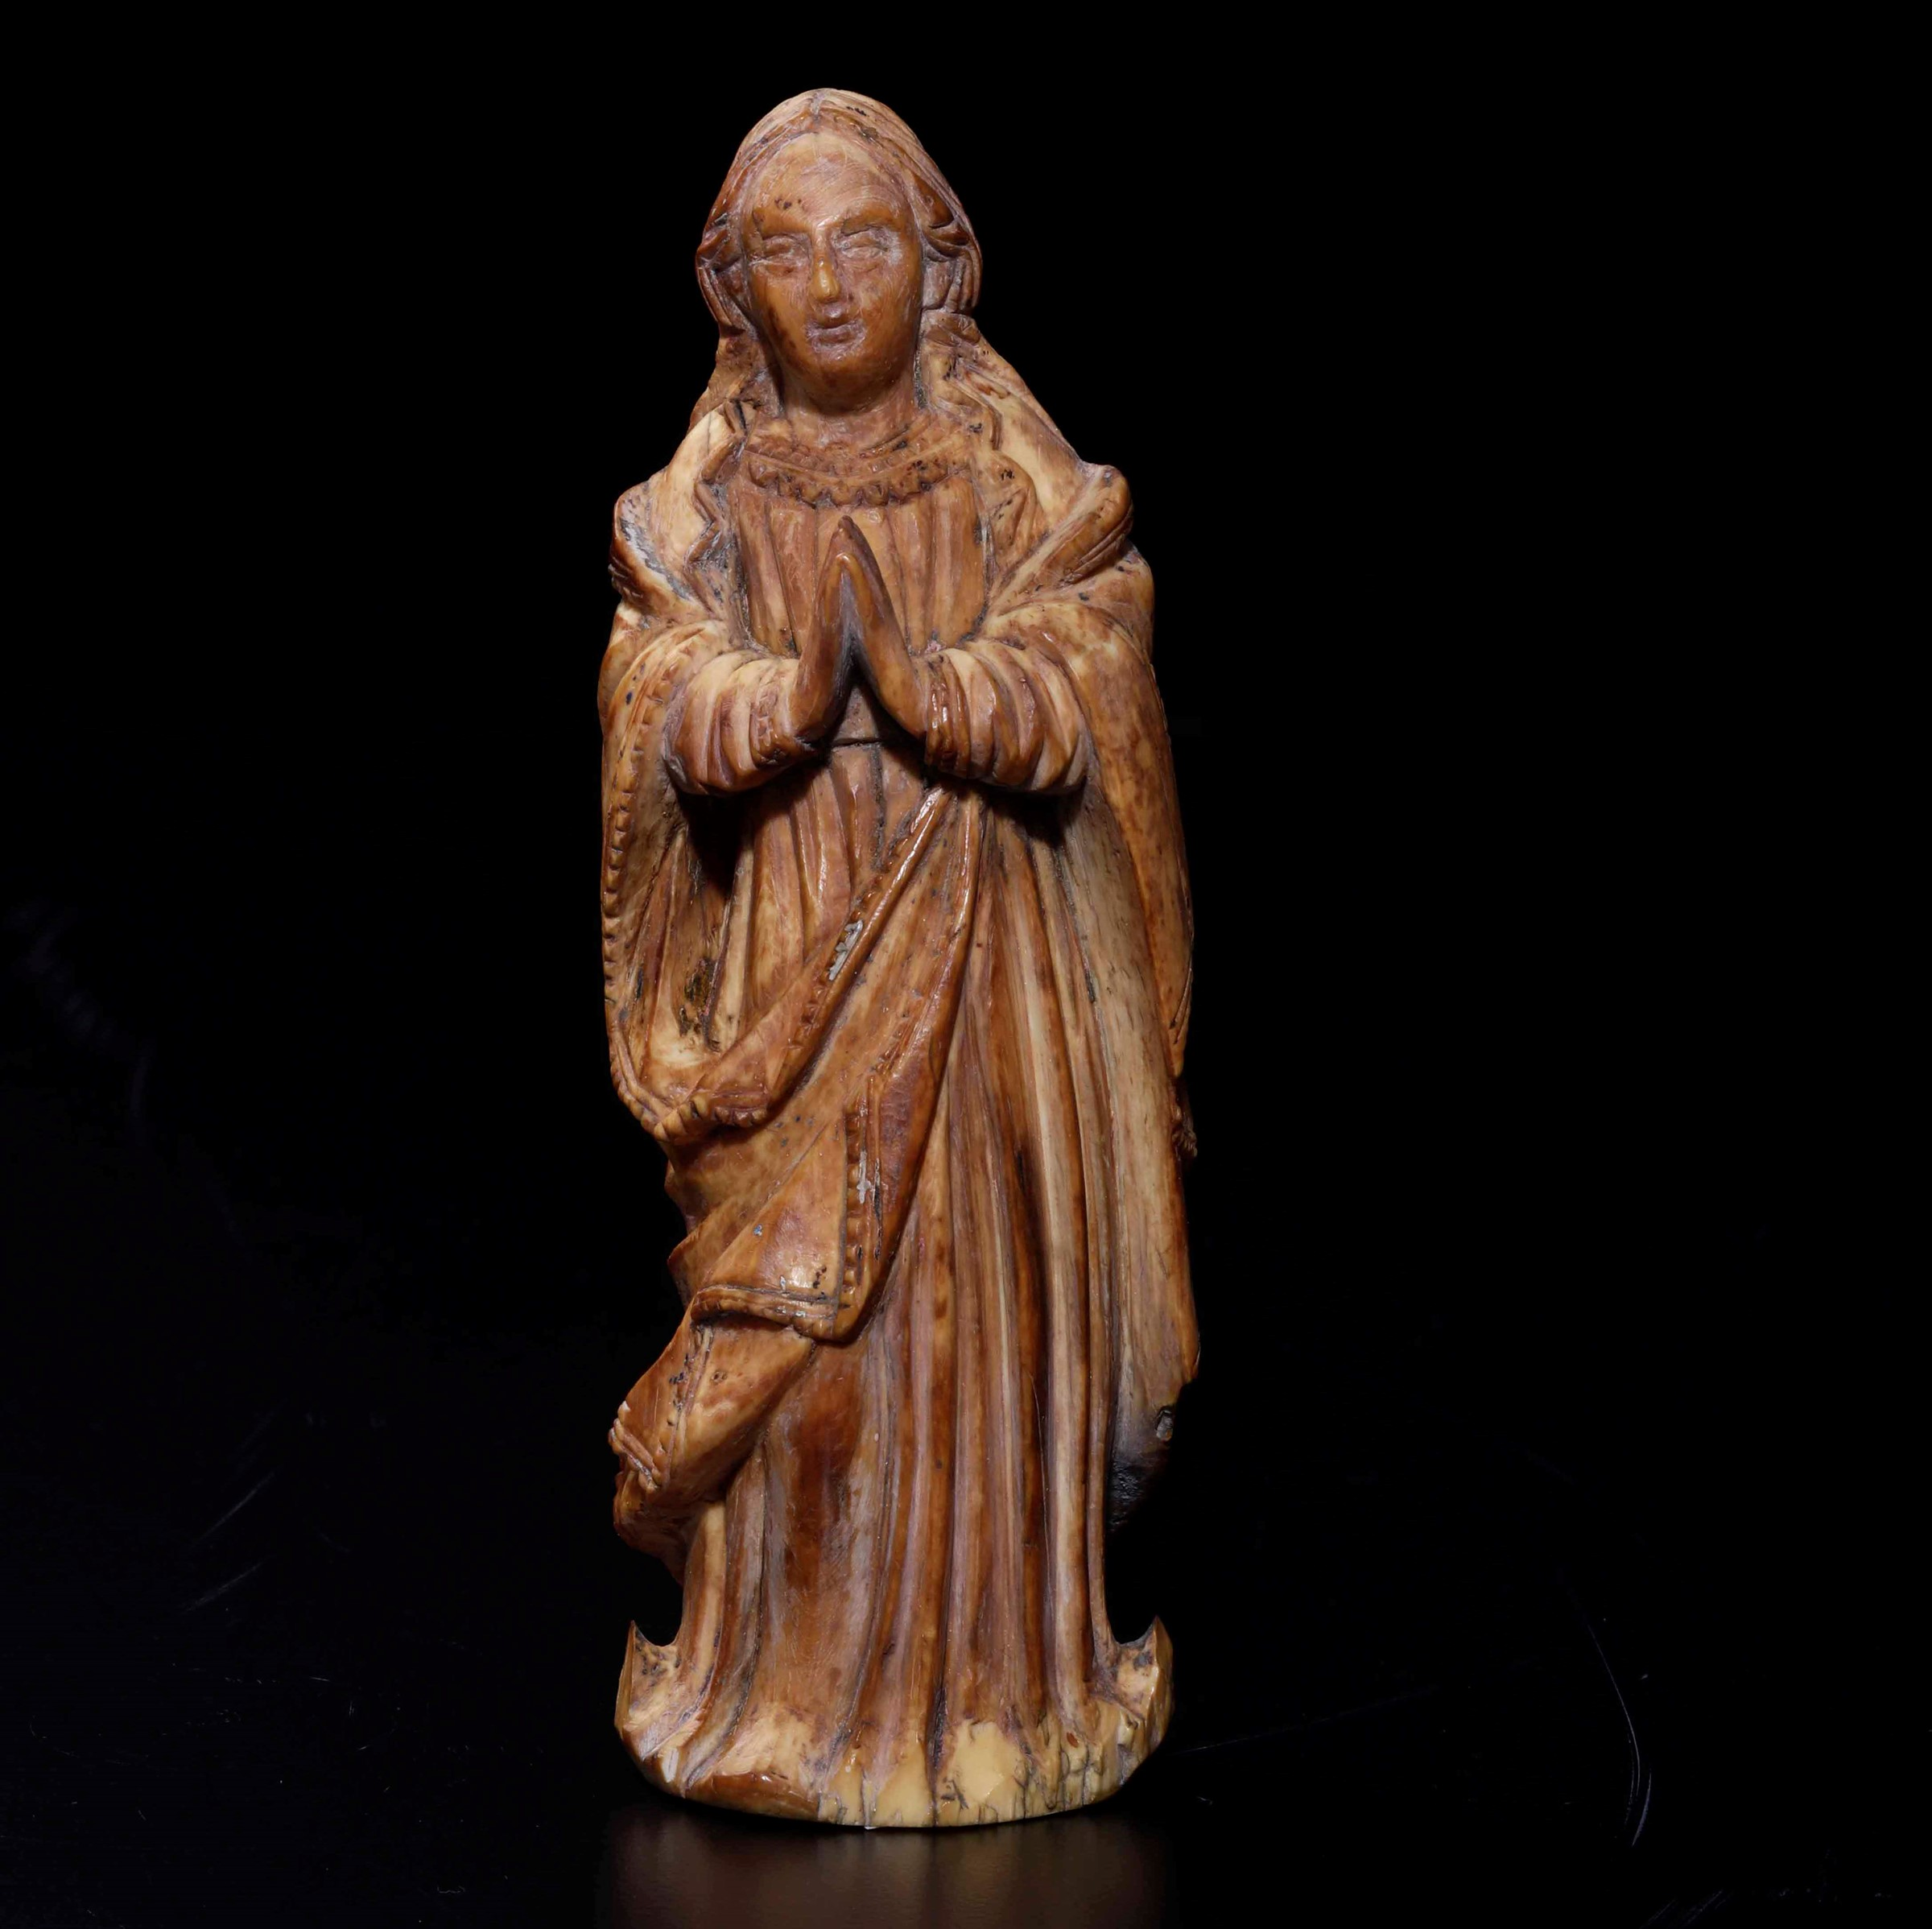 An ivory sculpture, Portugal or Philippines, 1700s - cm 15 -